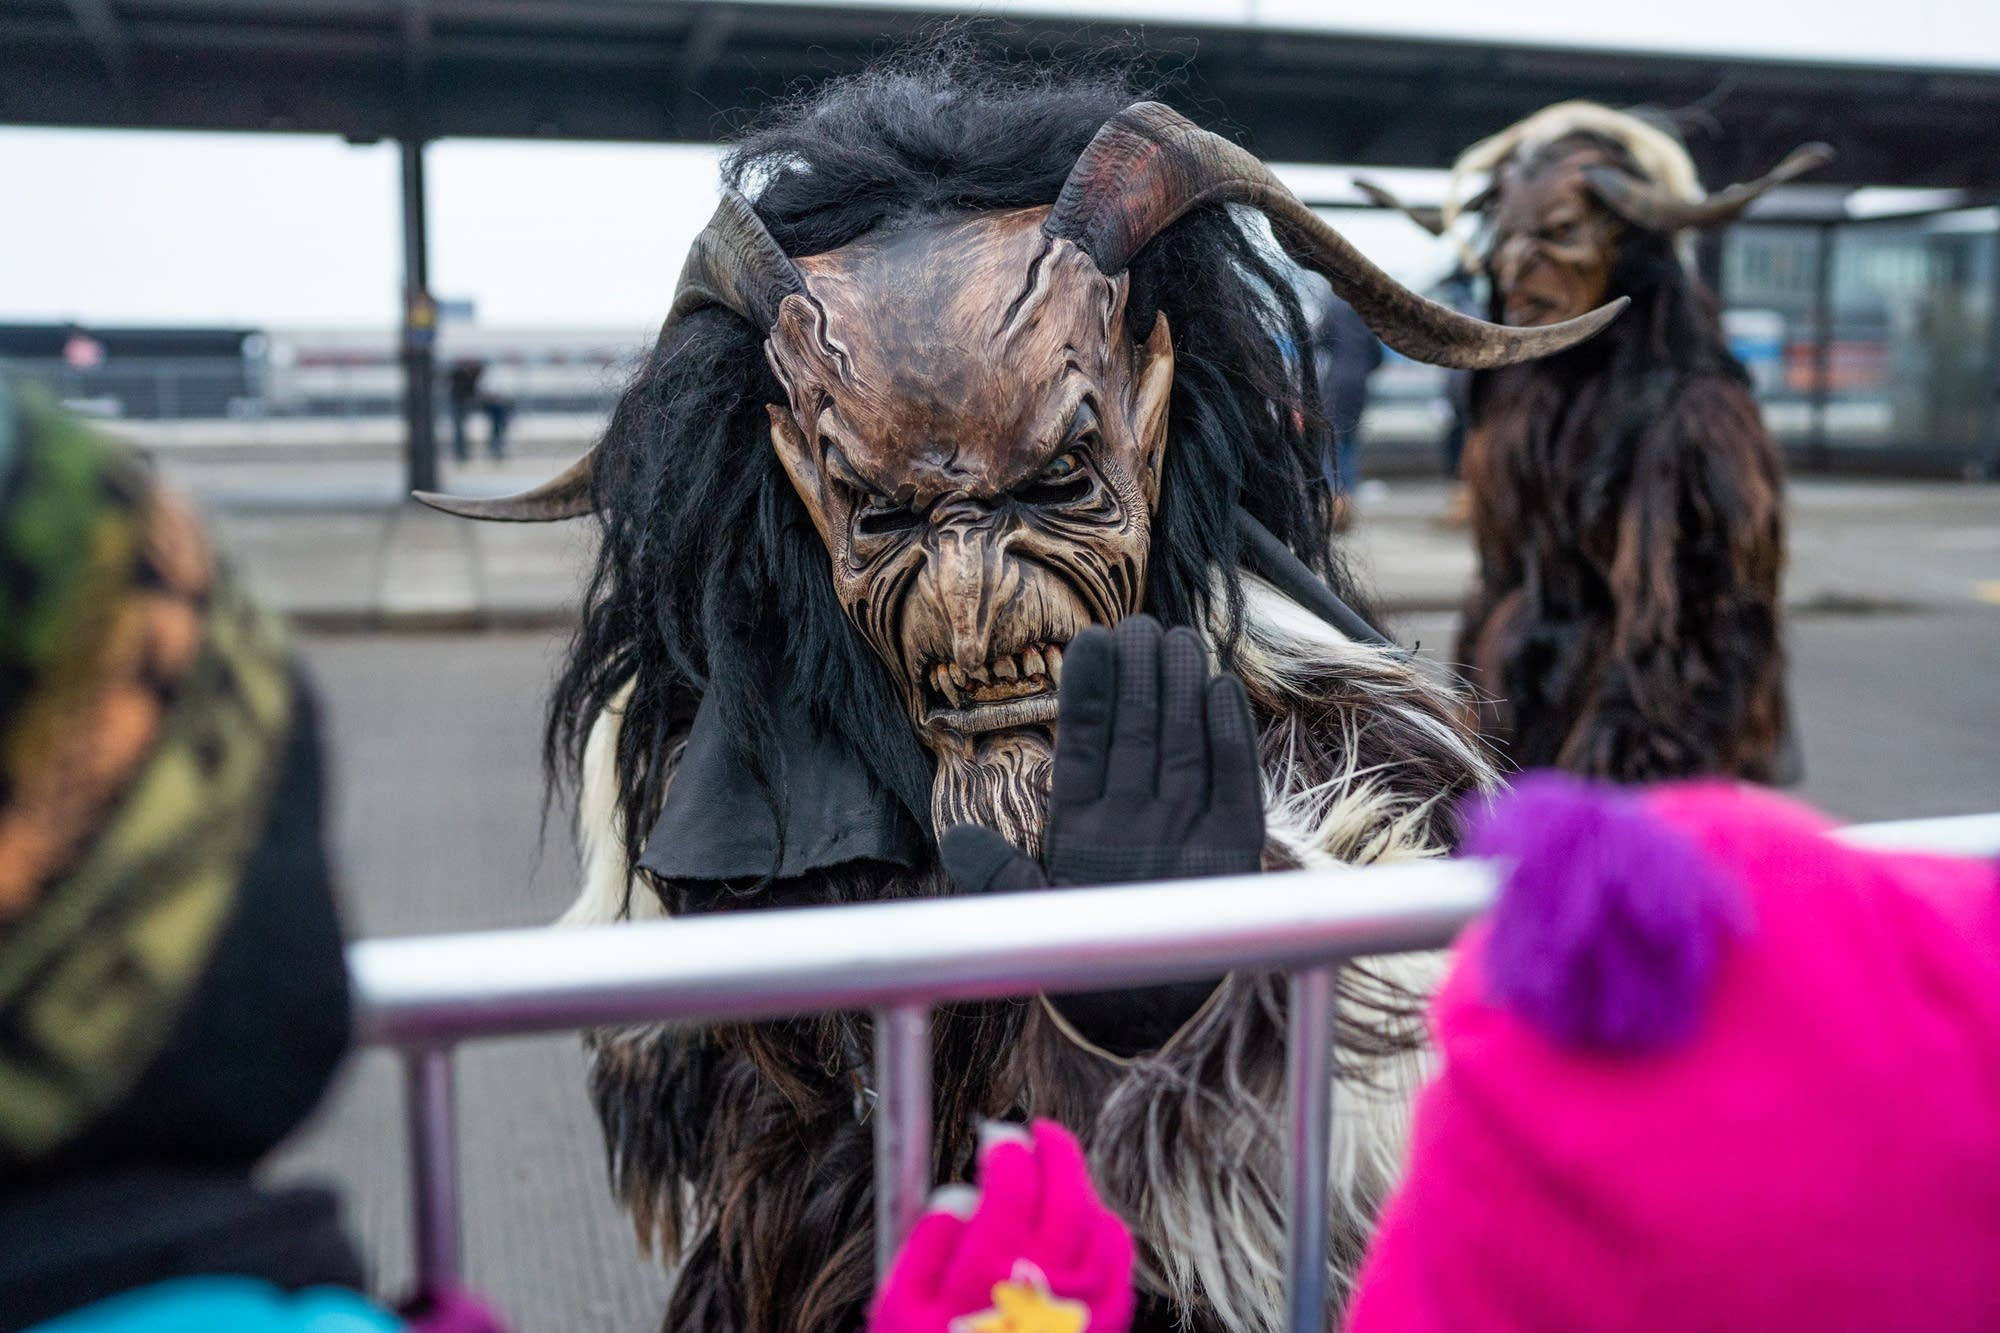 A Krampus waves at children at the Christmas Market.